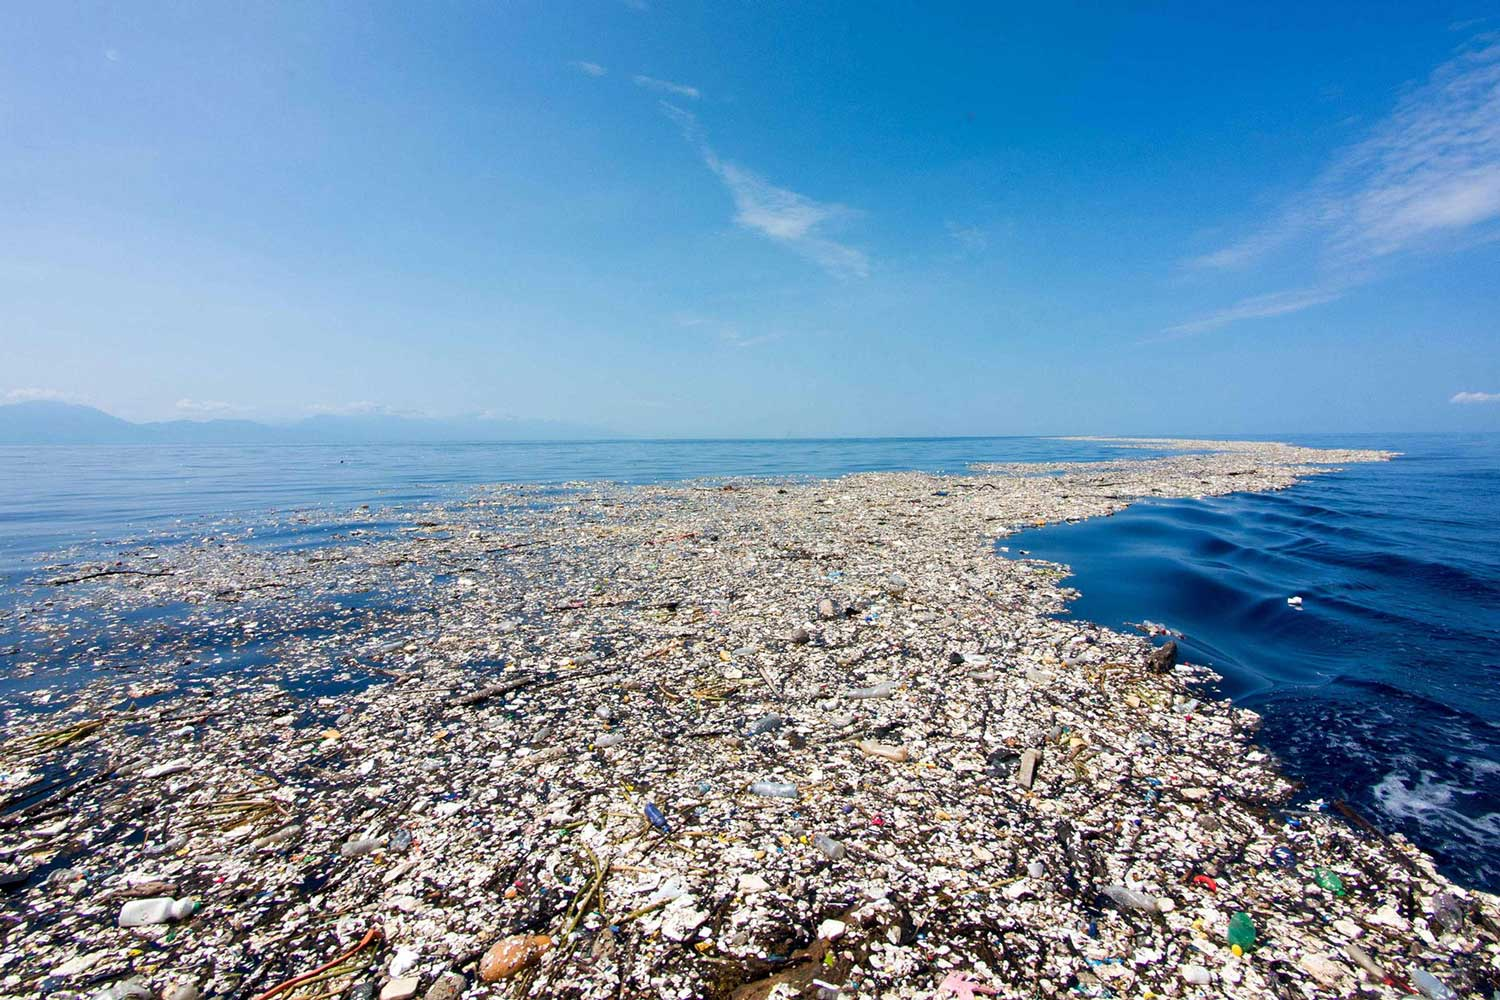 The Great Pacific Garbage Patch is larger than the state of Texas, and it's just one of five garbage patches in the oceans